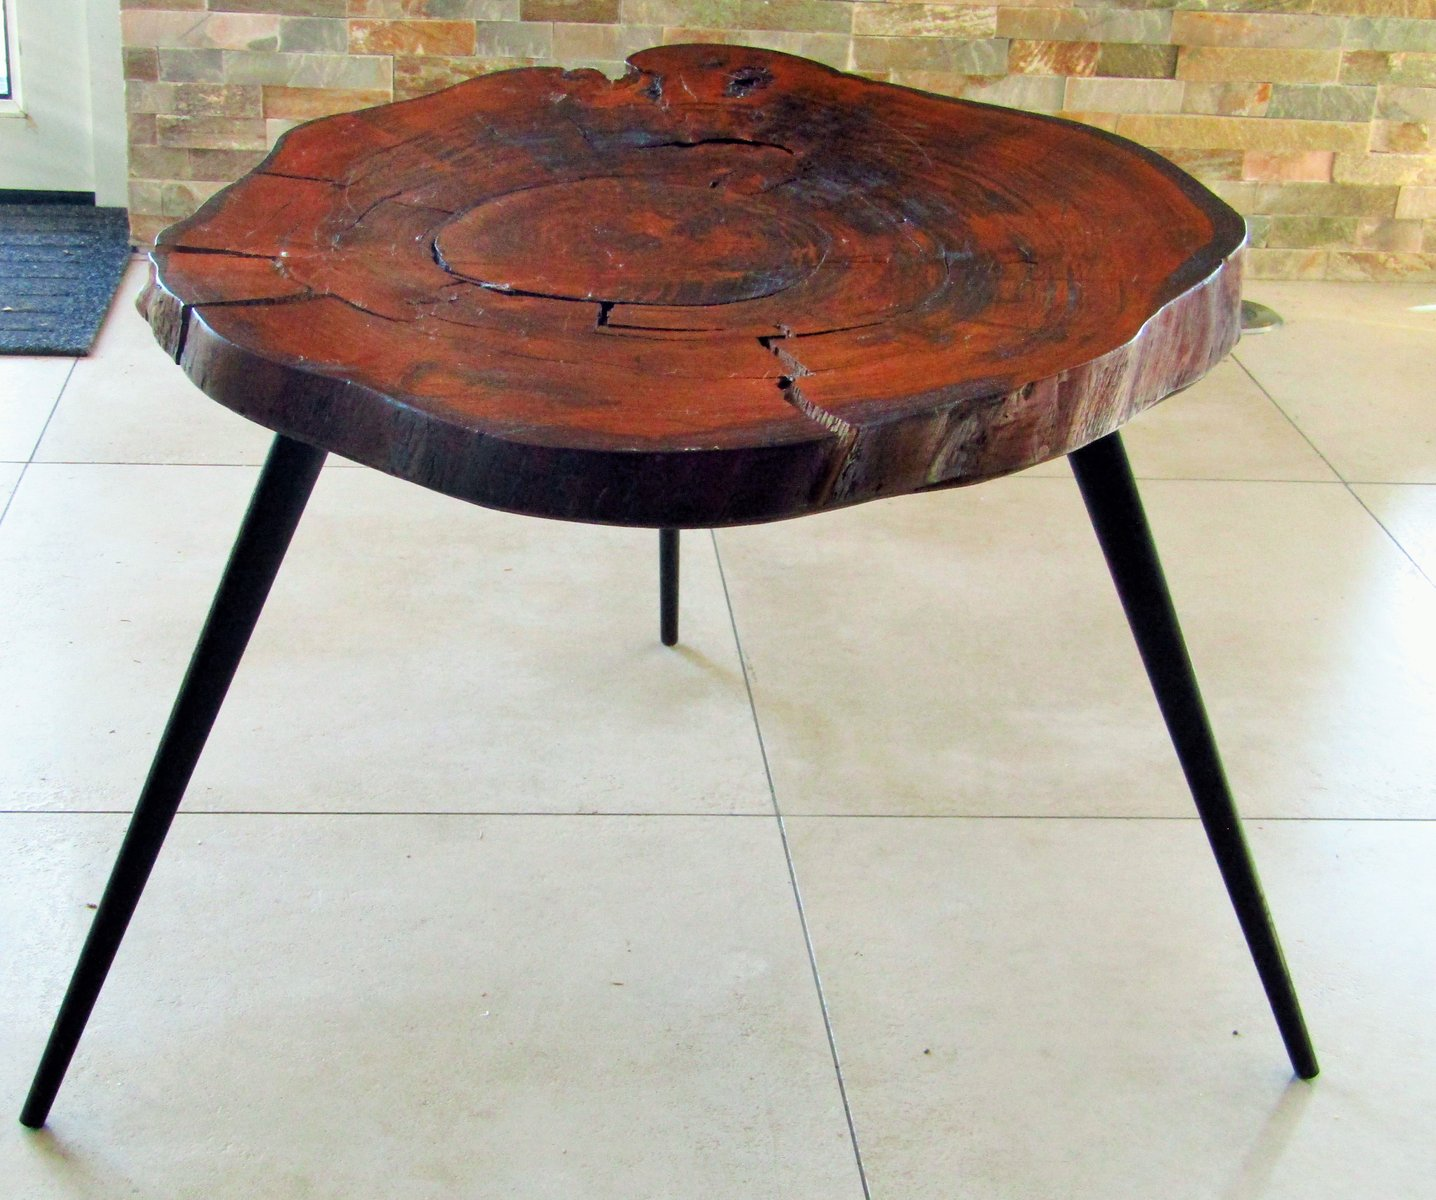 Coffee Table 1950s: Tree Trunk Coffee Table, 1950s For Sale At Pamono